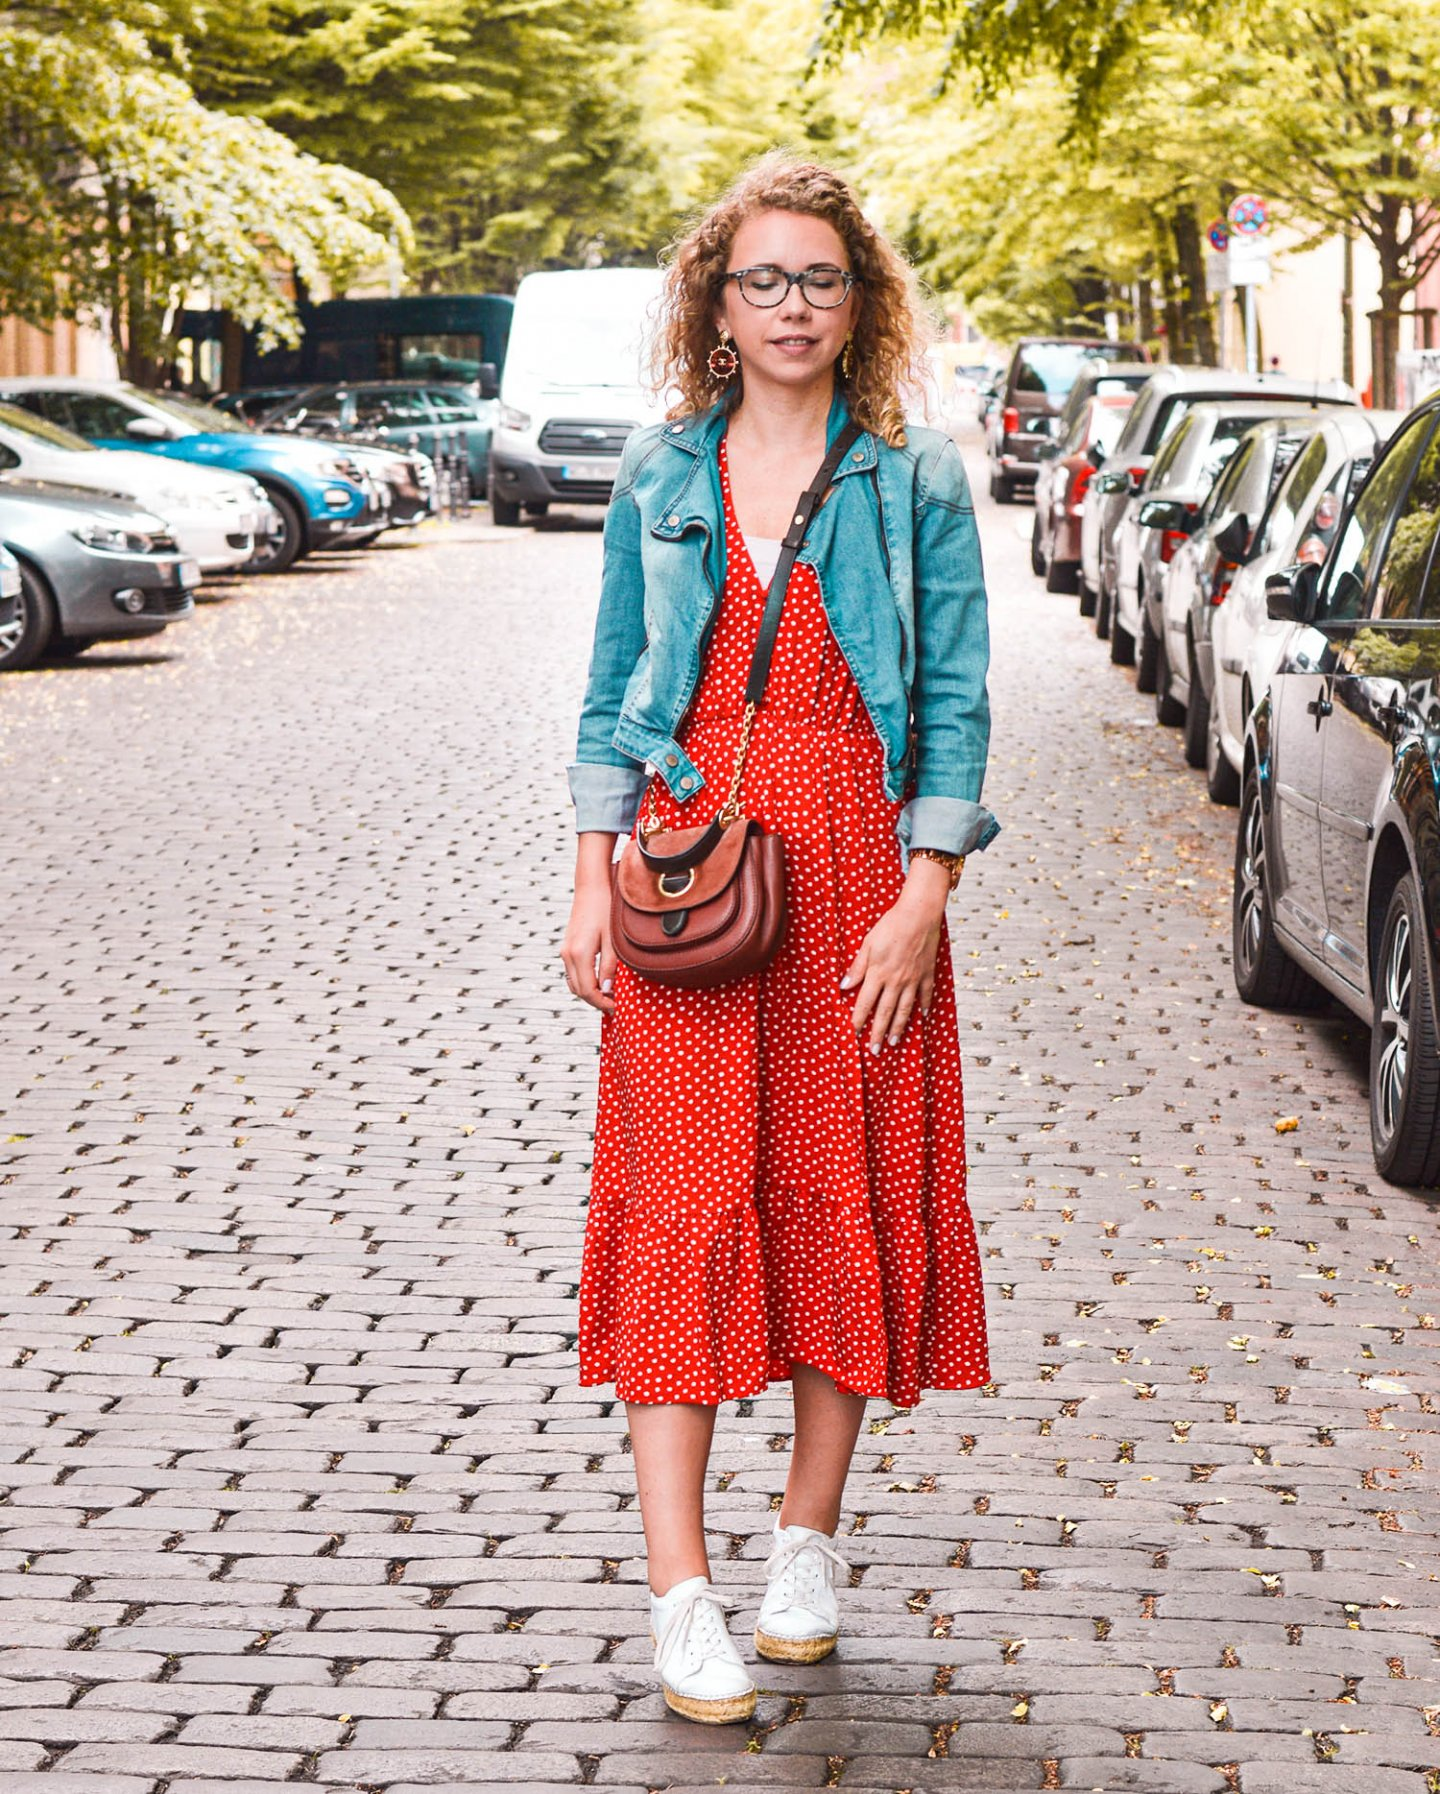 midikleid mit polka dots in Berlin